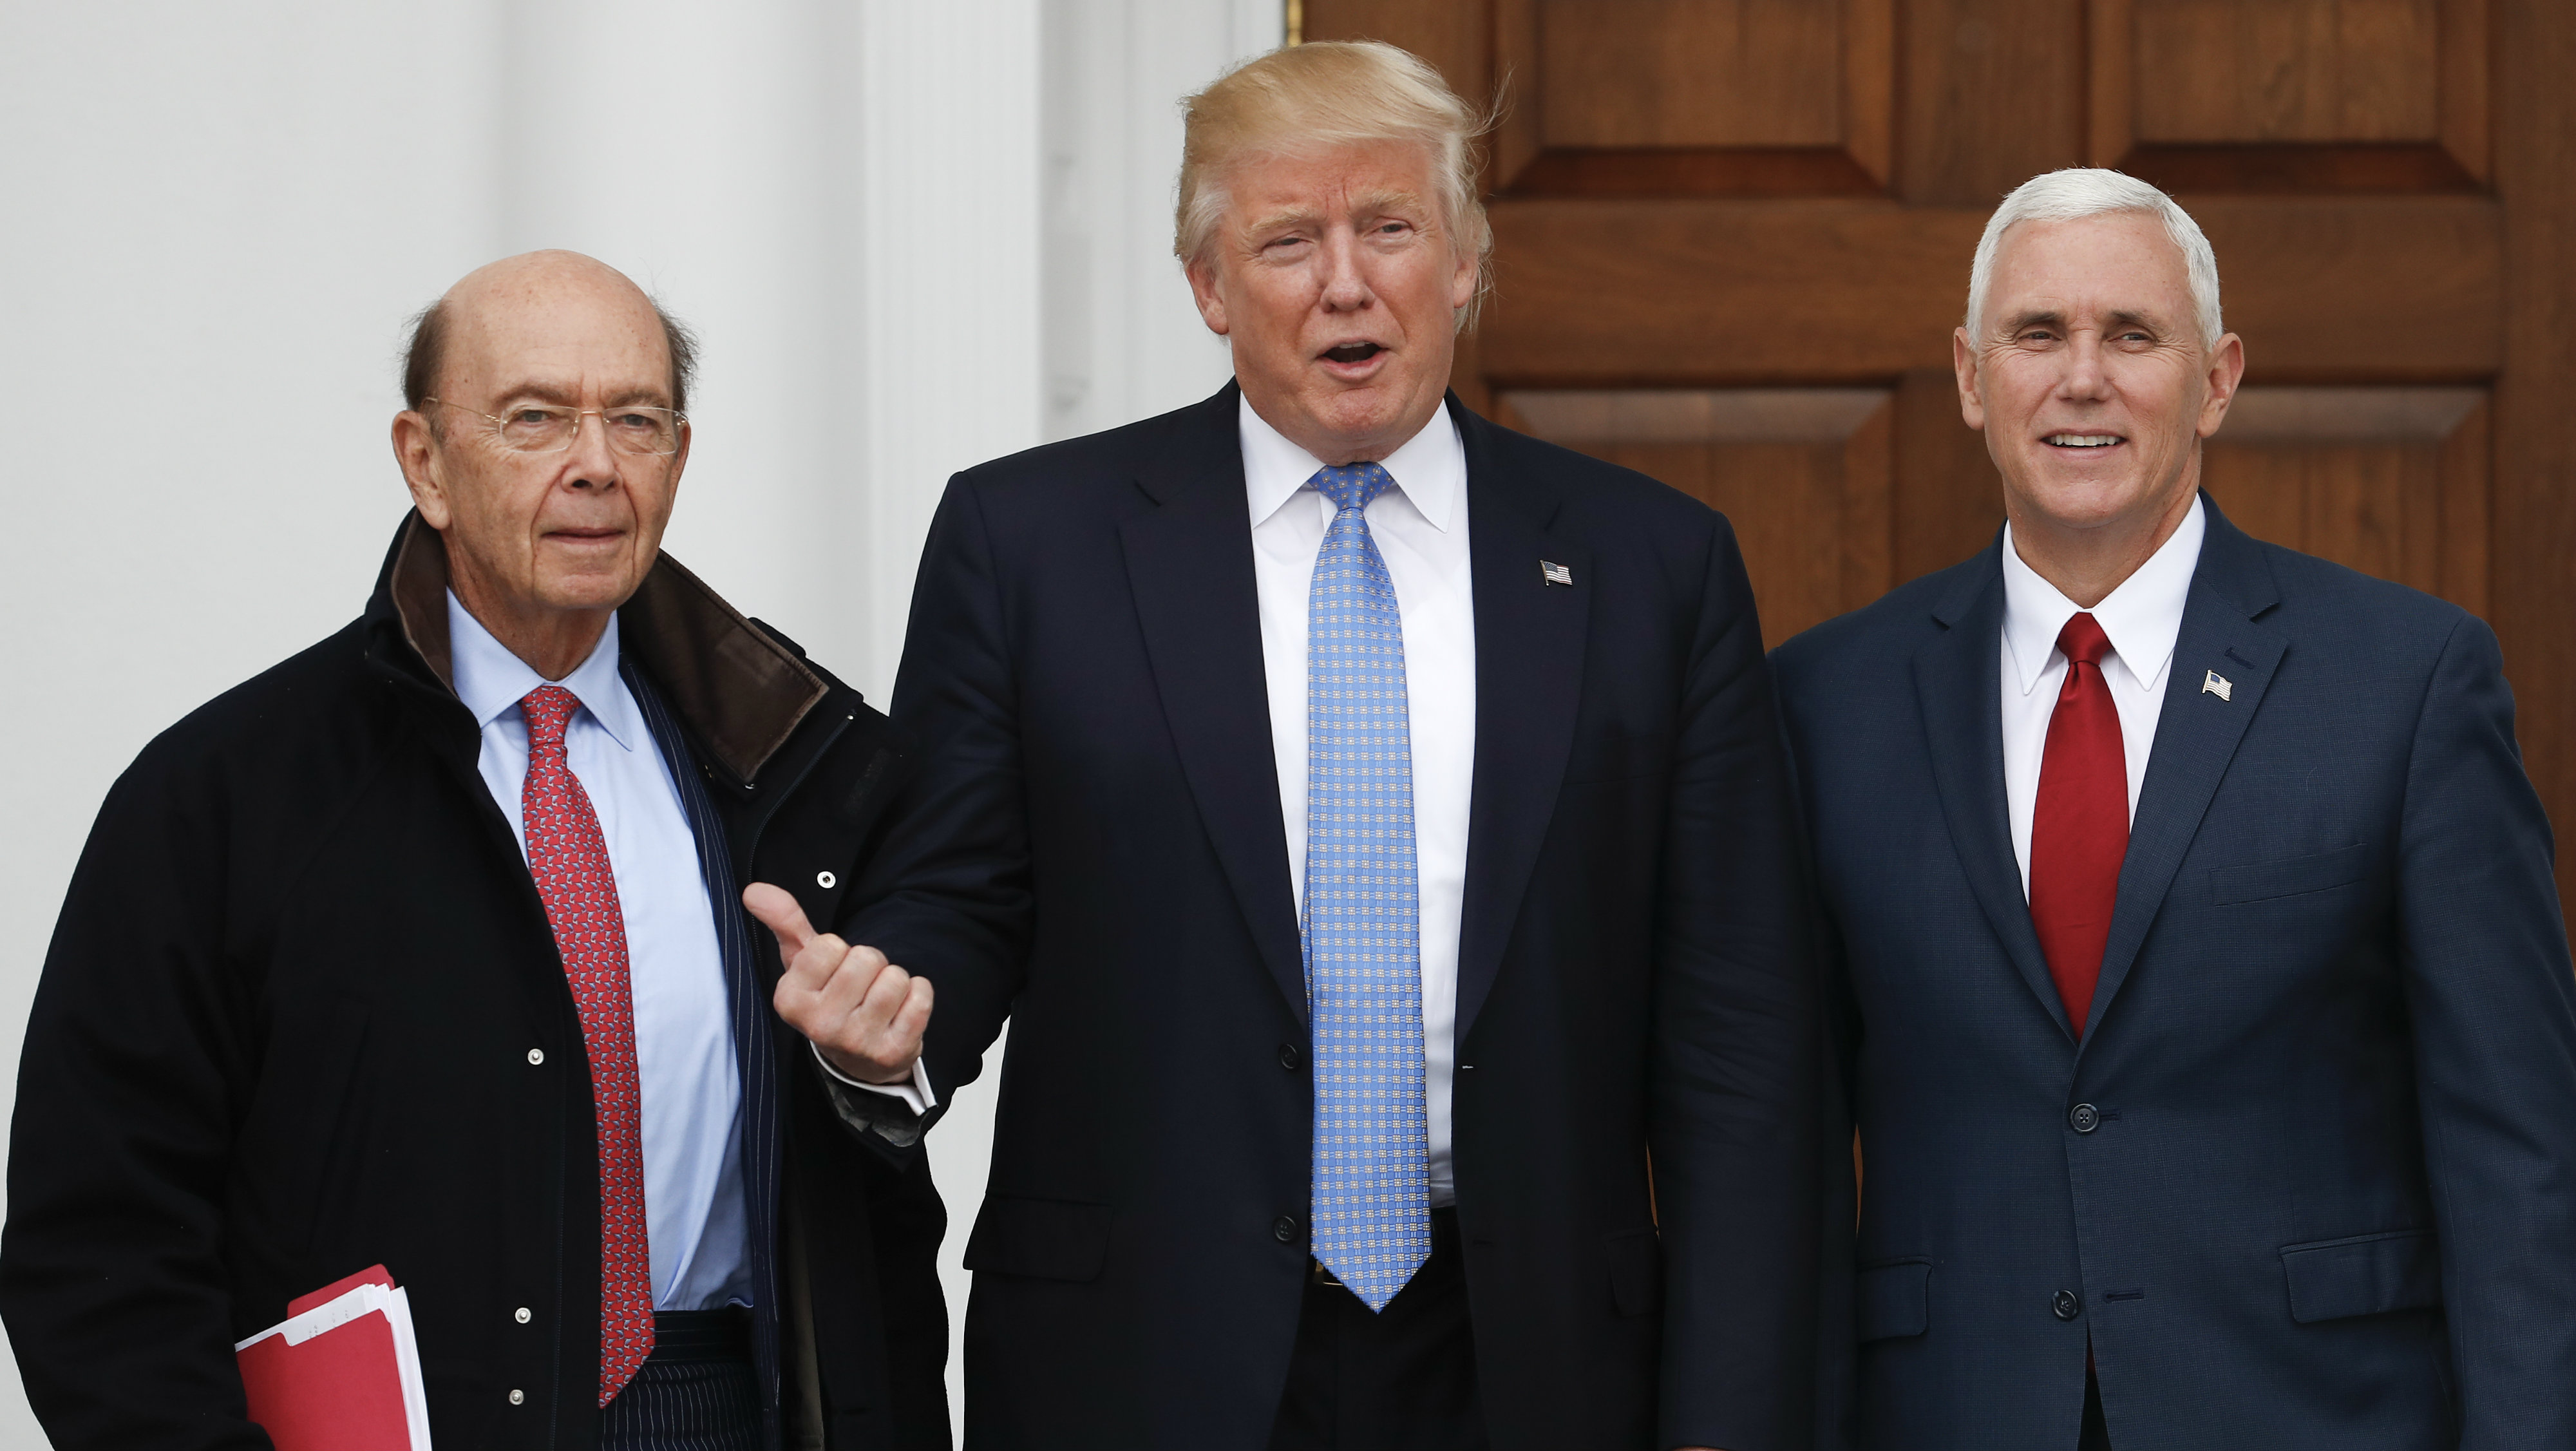 Donald Trump, with Mike Pence, pointing to Wilbur Ross Jr.